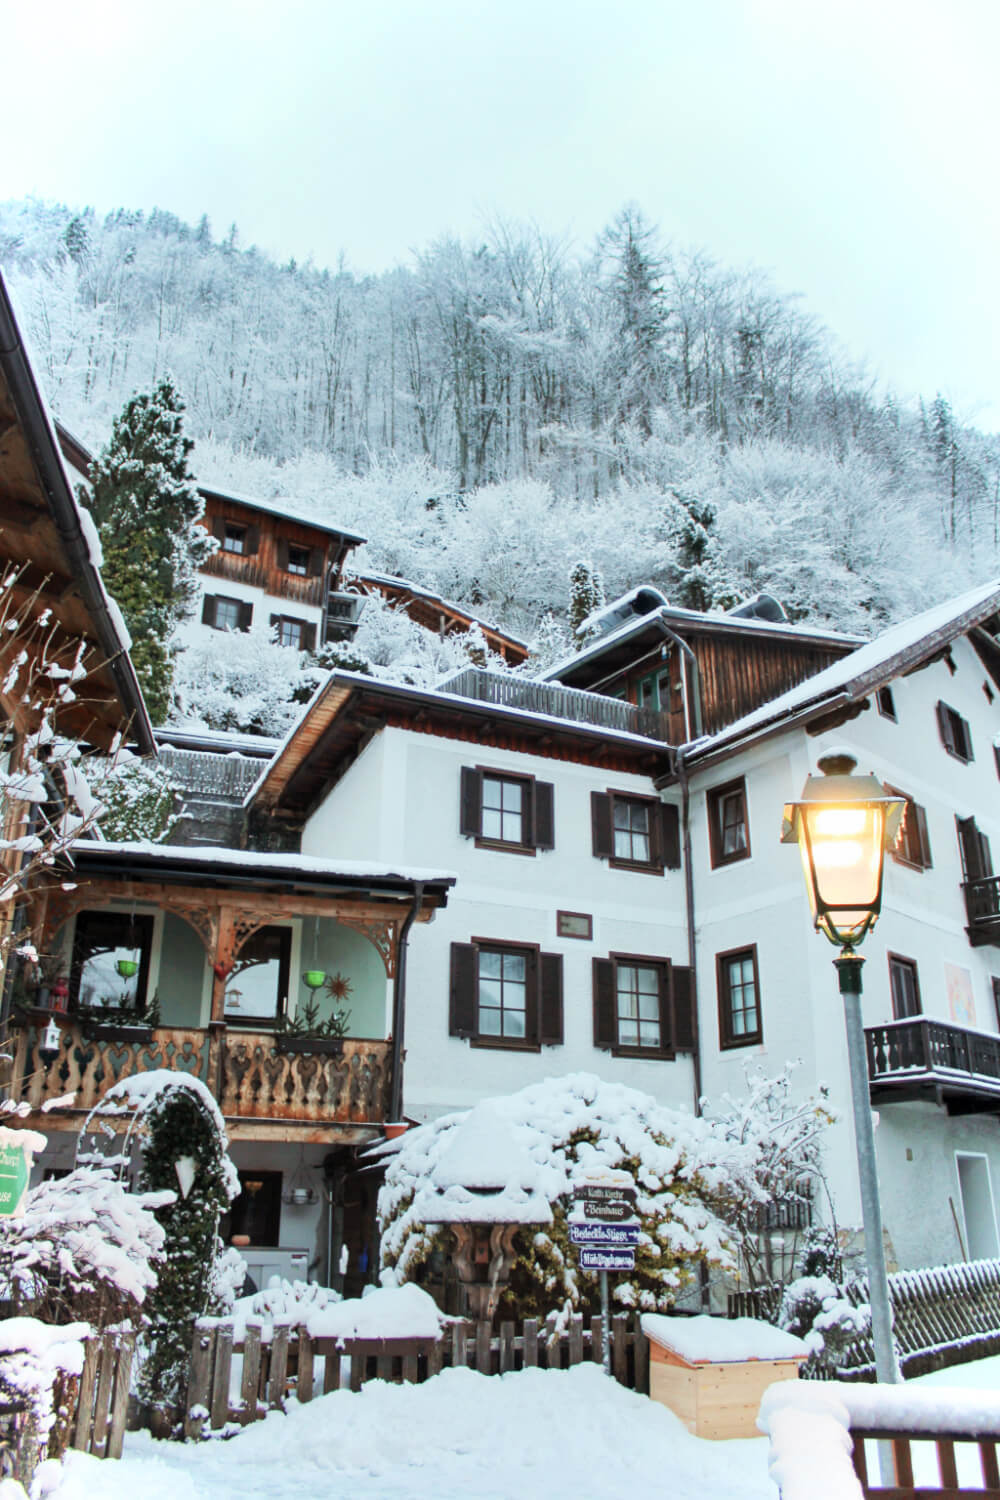 Snowy houses freshly covered in snow on a quiet morning in Hallstatt, Austria in the winter!